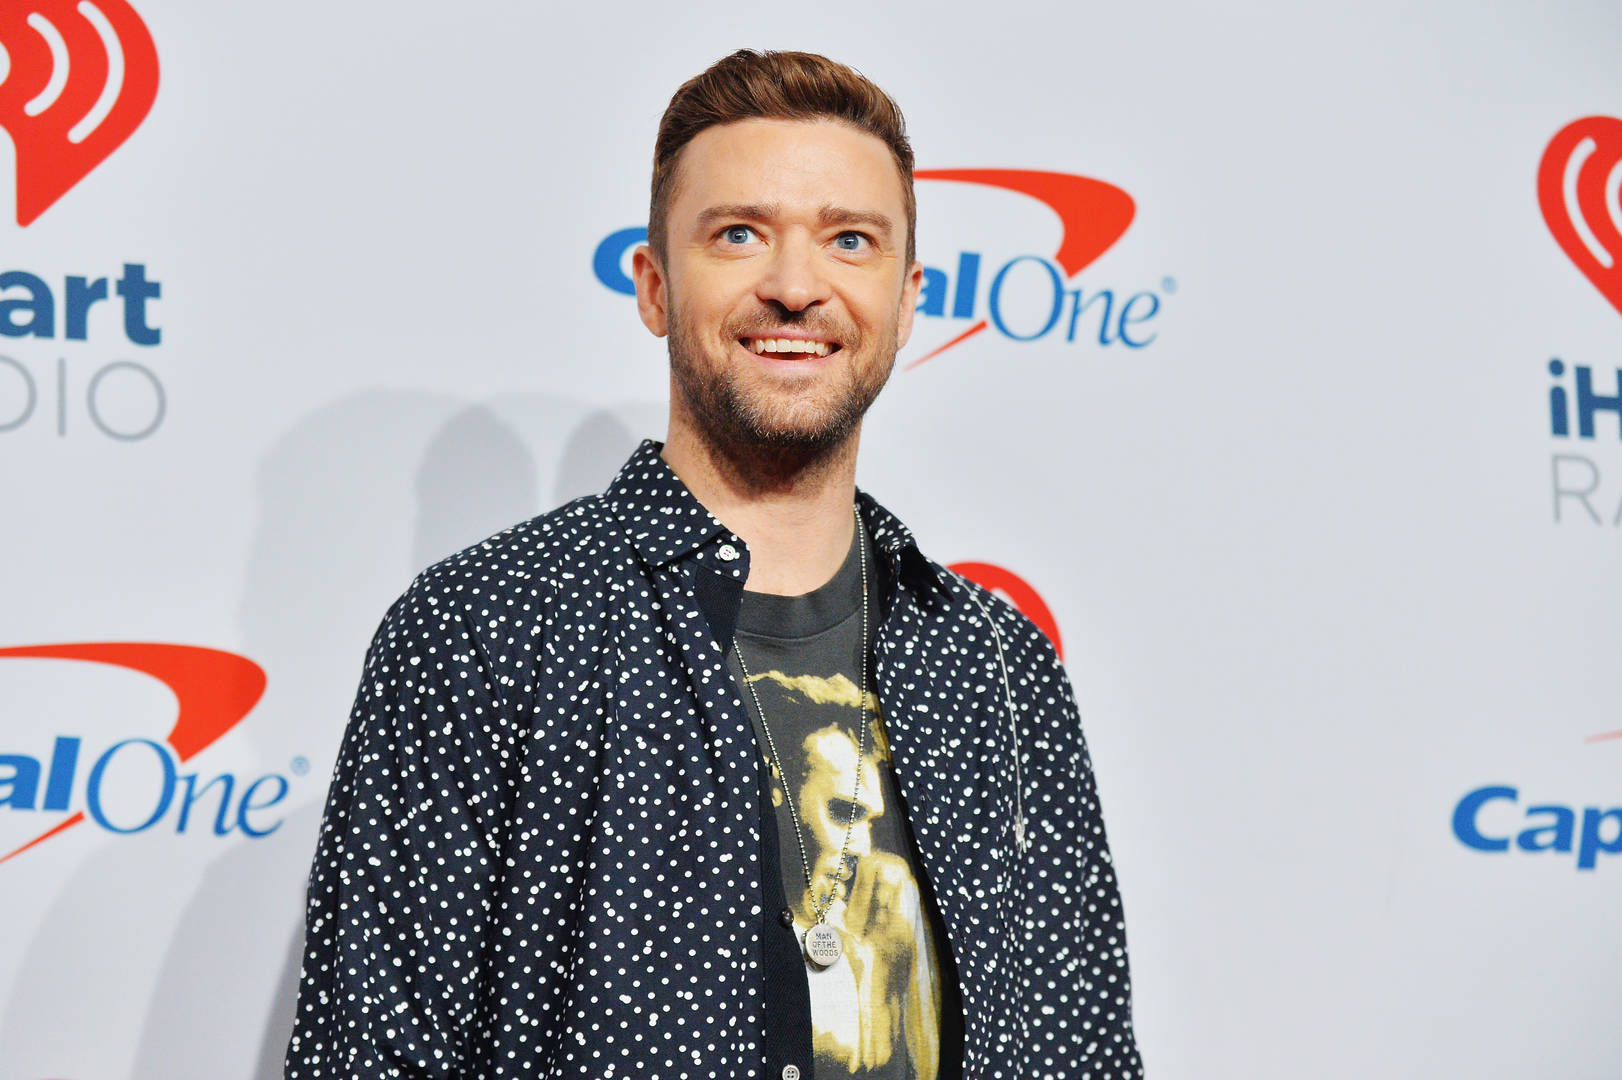 Justin Timberlake says new album in works